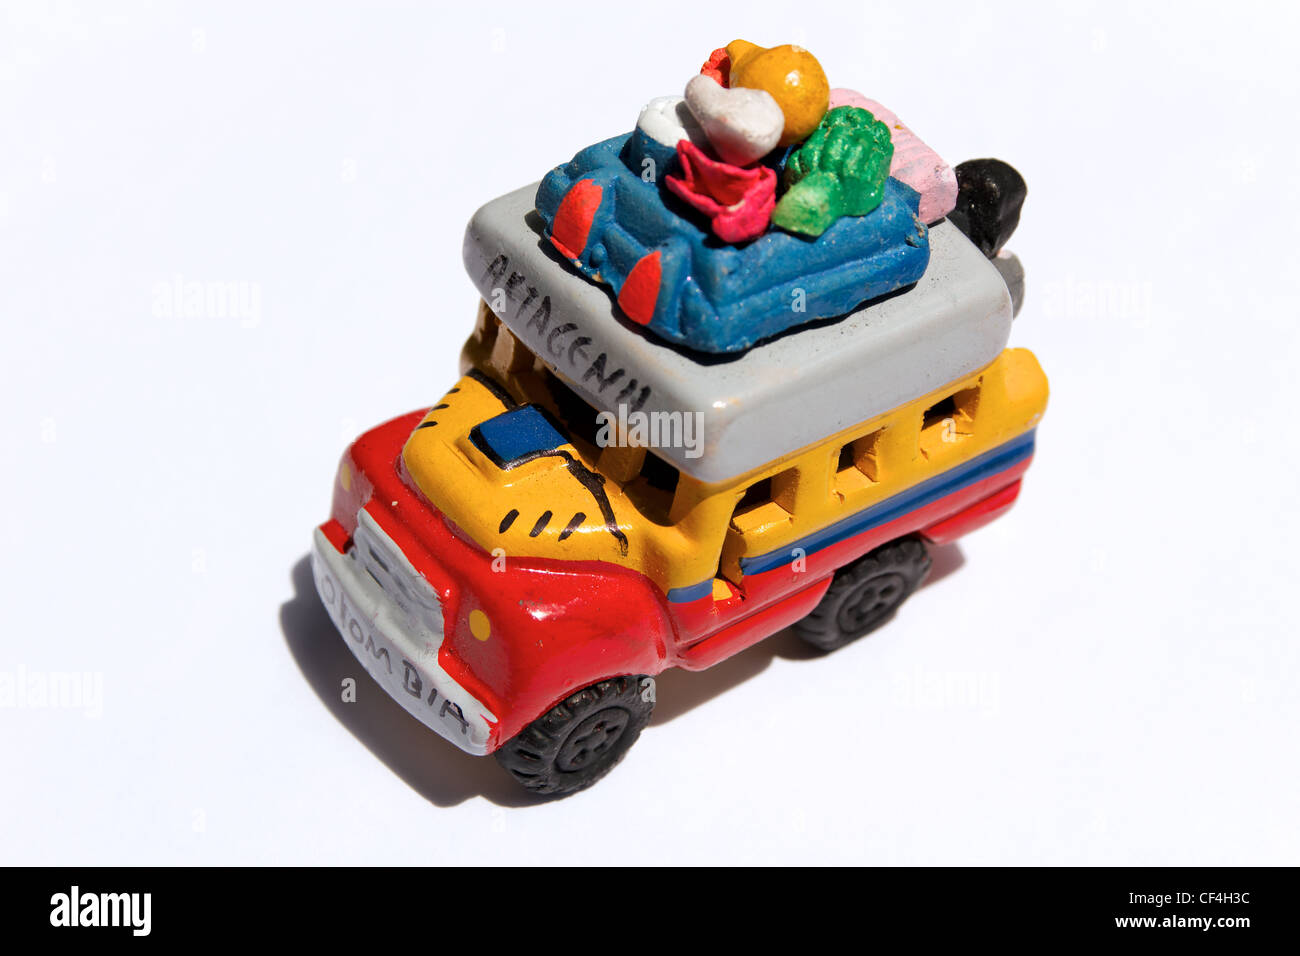 Close-up of a hand-crafted model of a 'Chiva', a truck chassis modified as a typical means of public transport - Stock Image